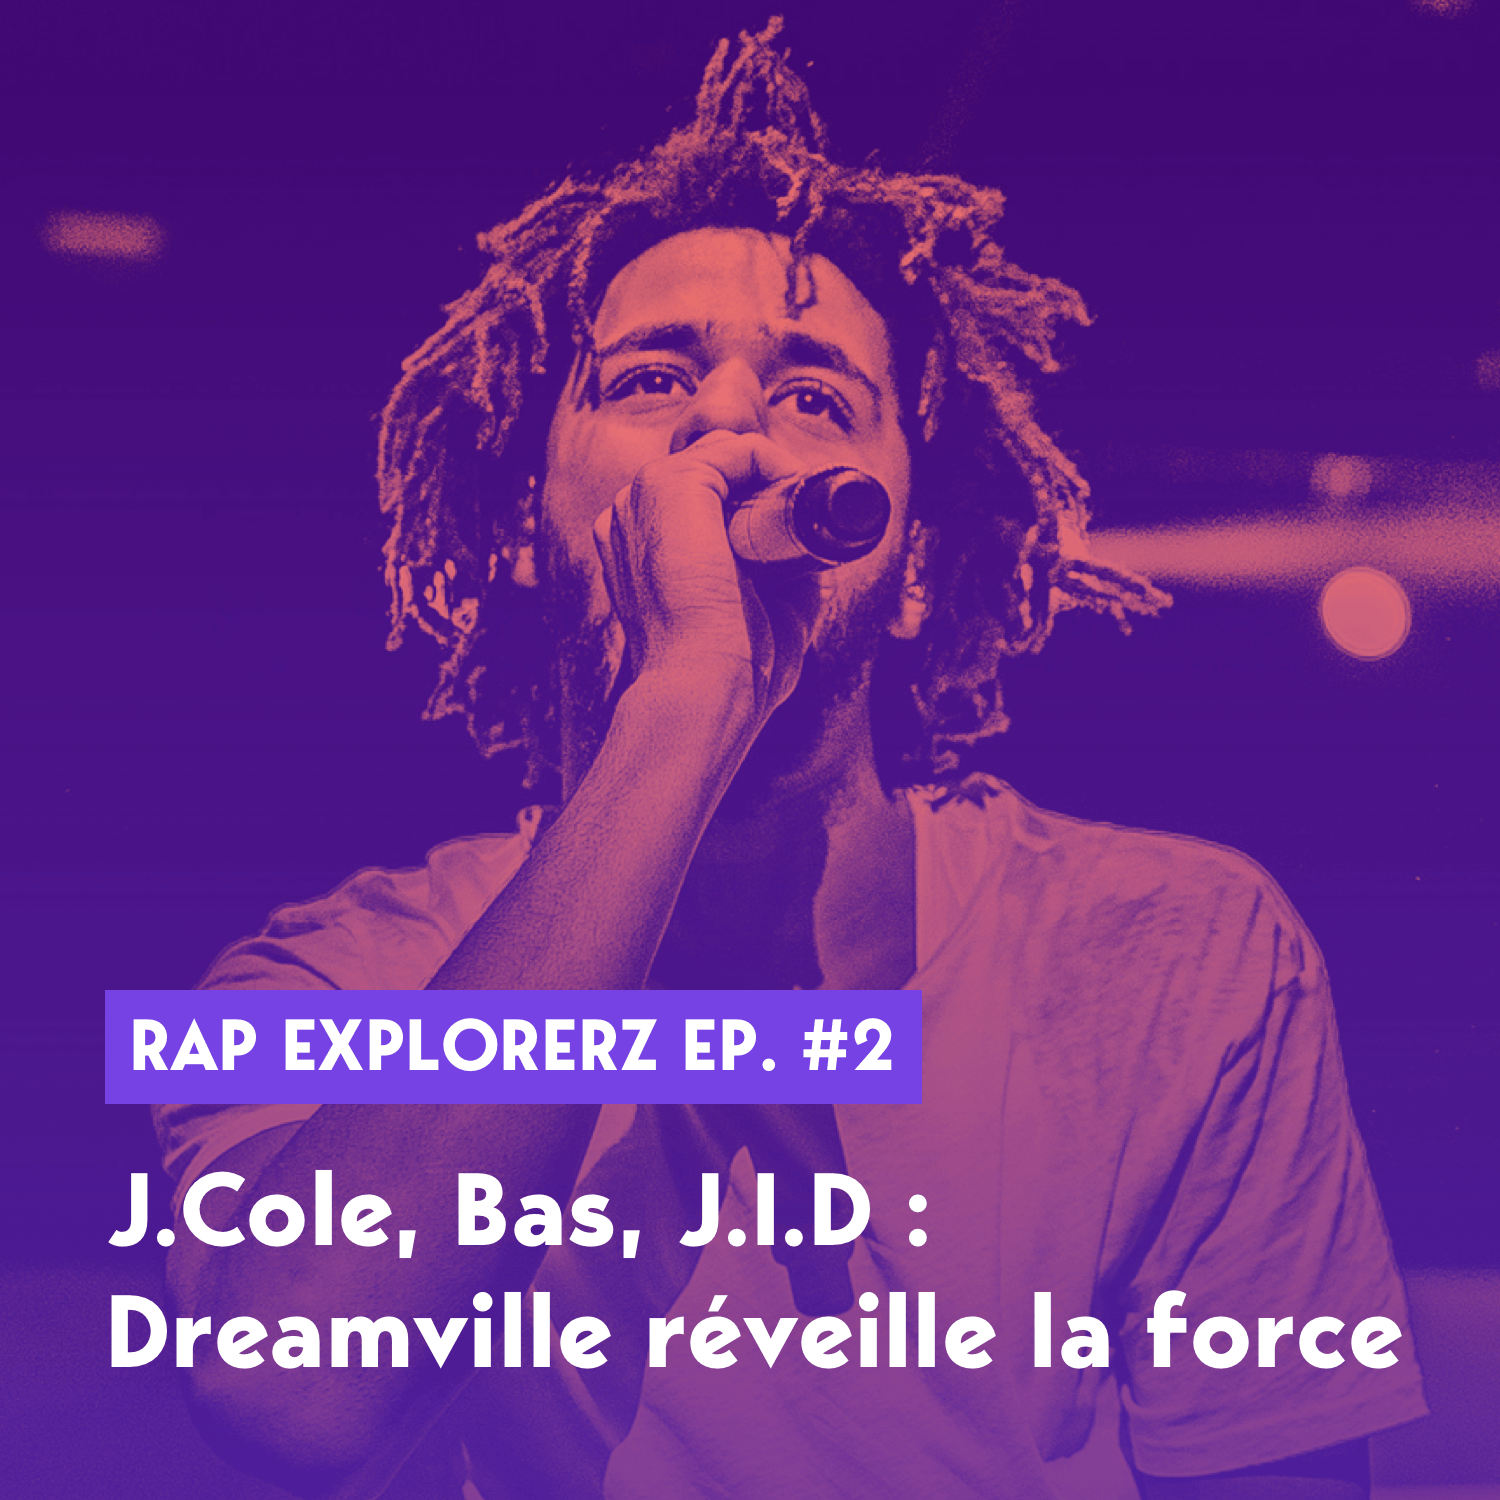 rap-explorerz-2-jcole-bas-jid-dreamville-reveille-force-2